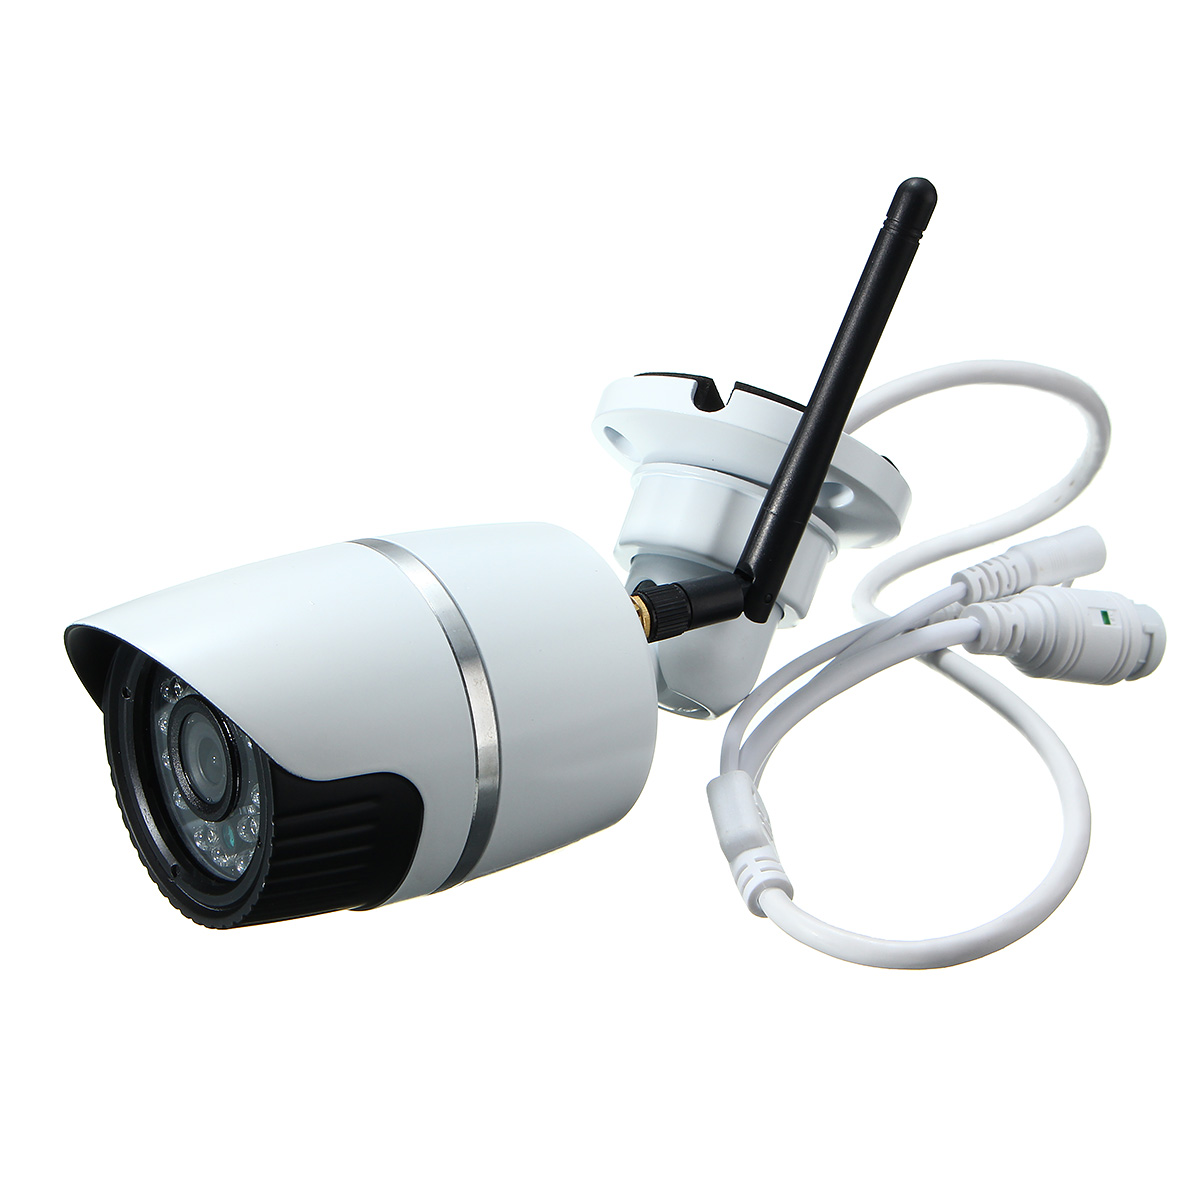 Safurance Outdoor Wireless WiFi 720P HD IP Network CCTV Home Security Camera IR Night Vision Surveillance Safety safurance mini wireless network wifi ip camera security nanny night vision cam surveillance home security